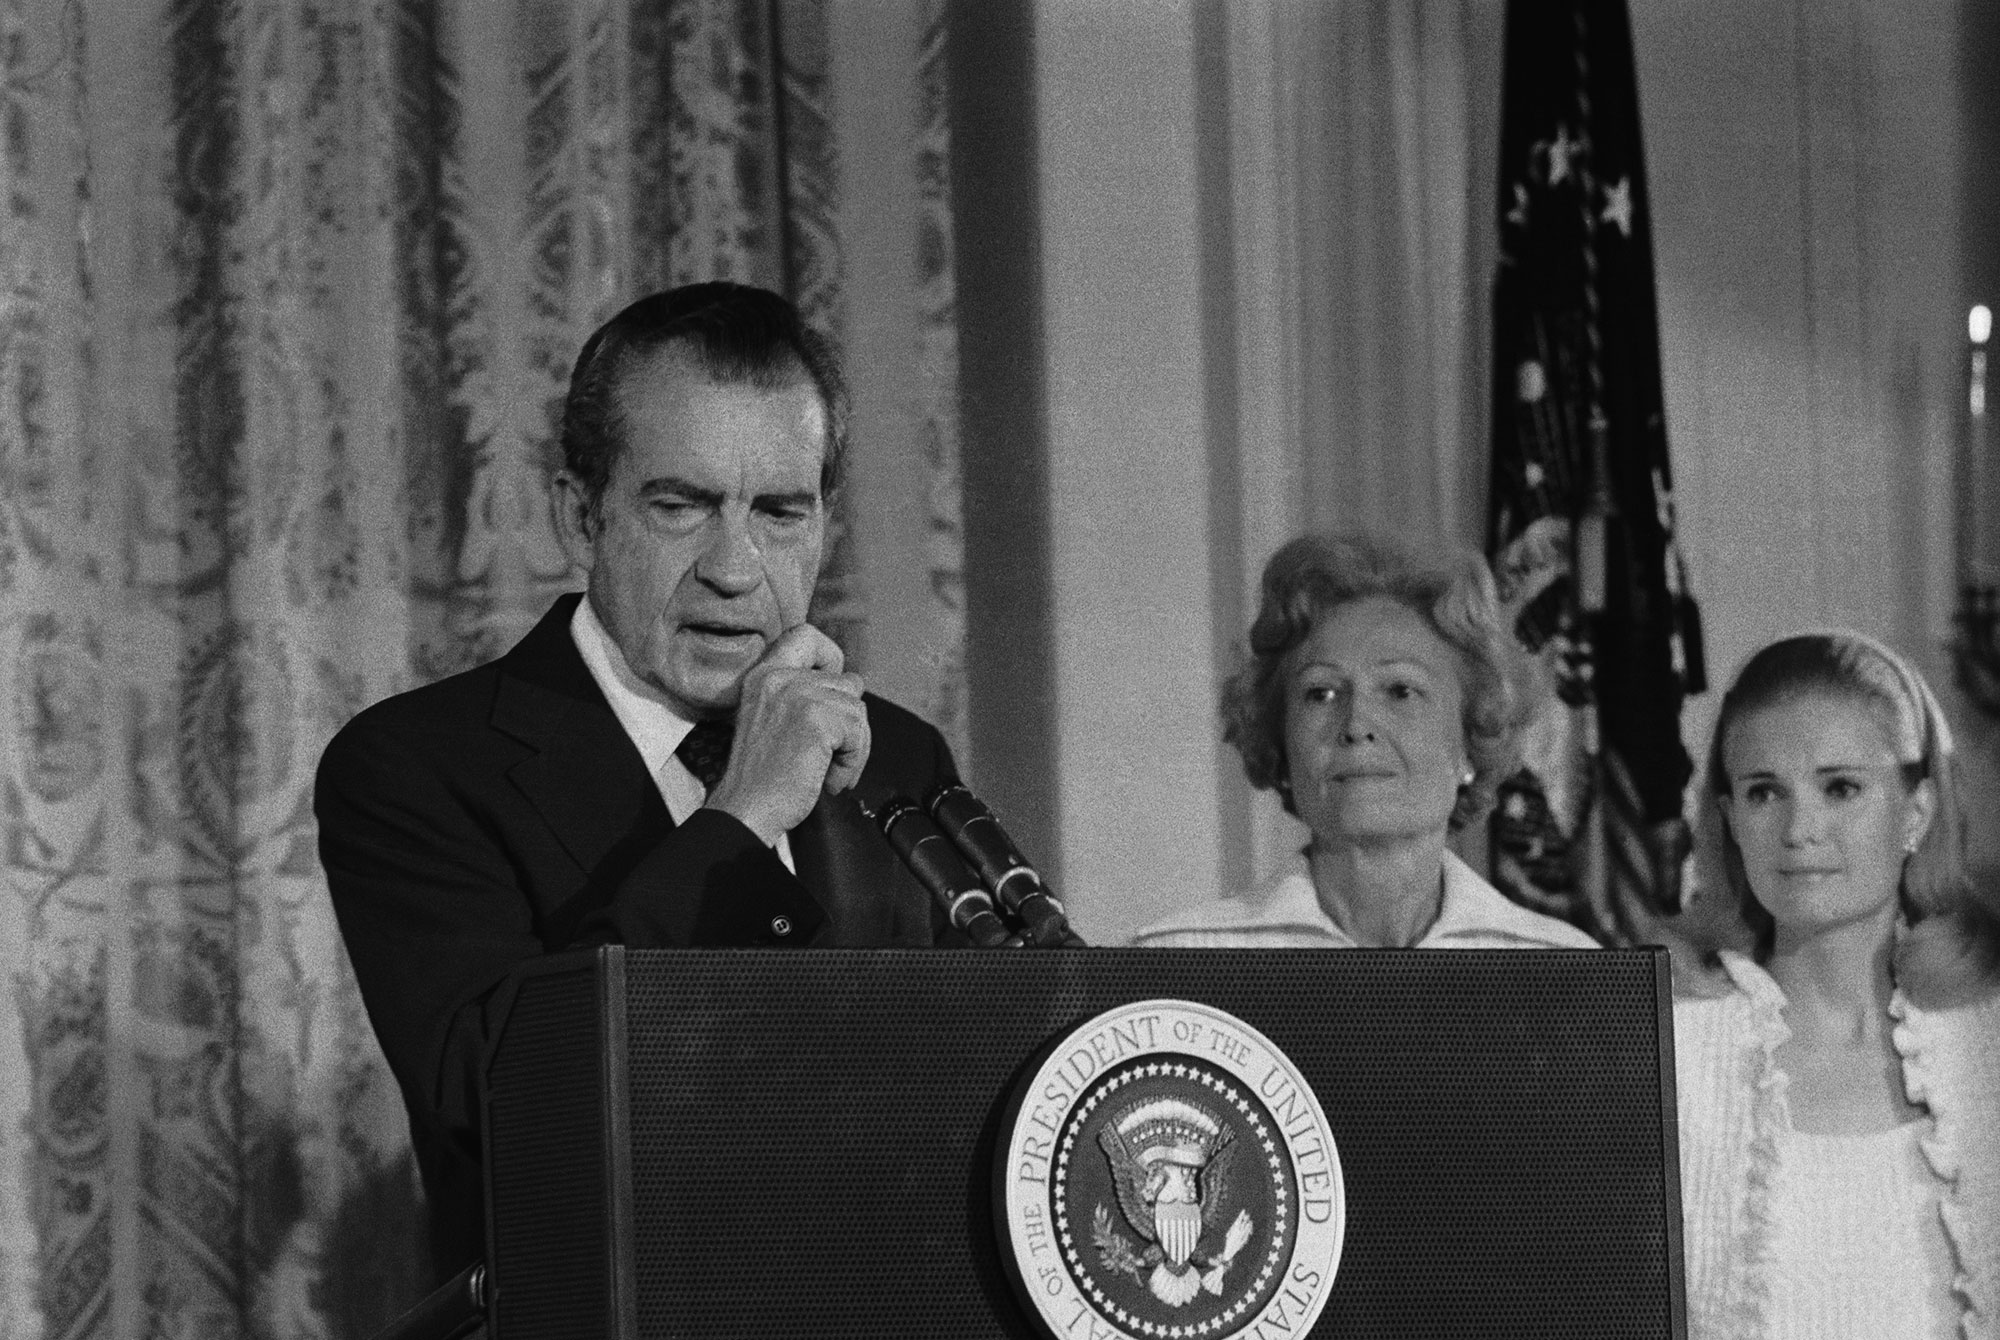 https://i0.wp.com/media.beam.usnews.com/e5/5e/1376aafa4761a4486958a744b9ee/140807-nixon1-editorial.jpg